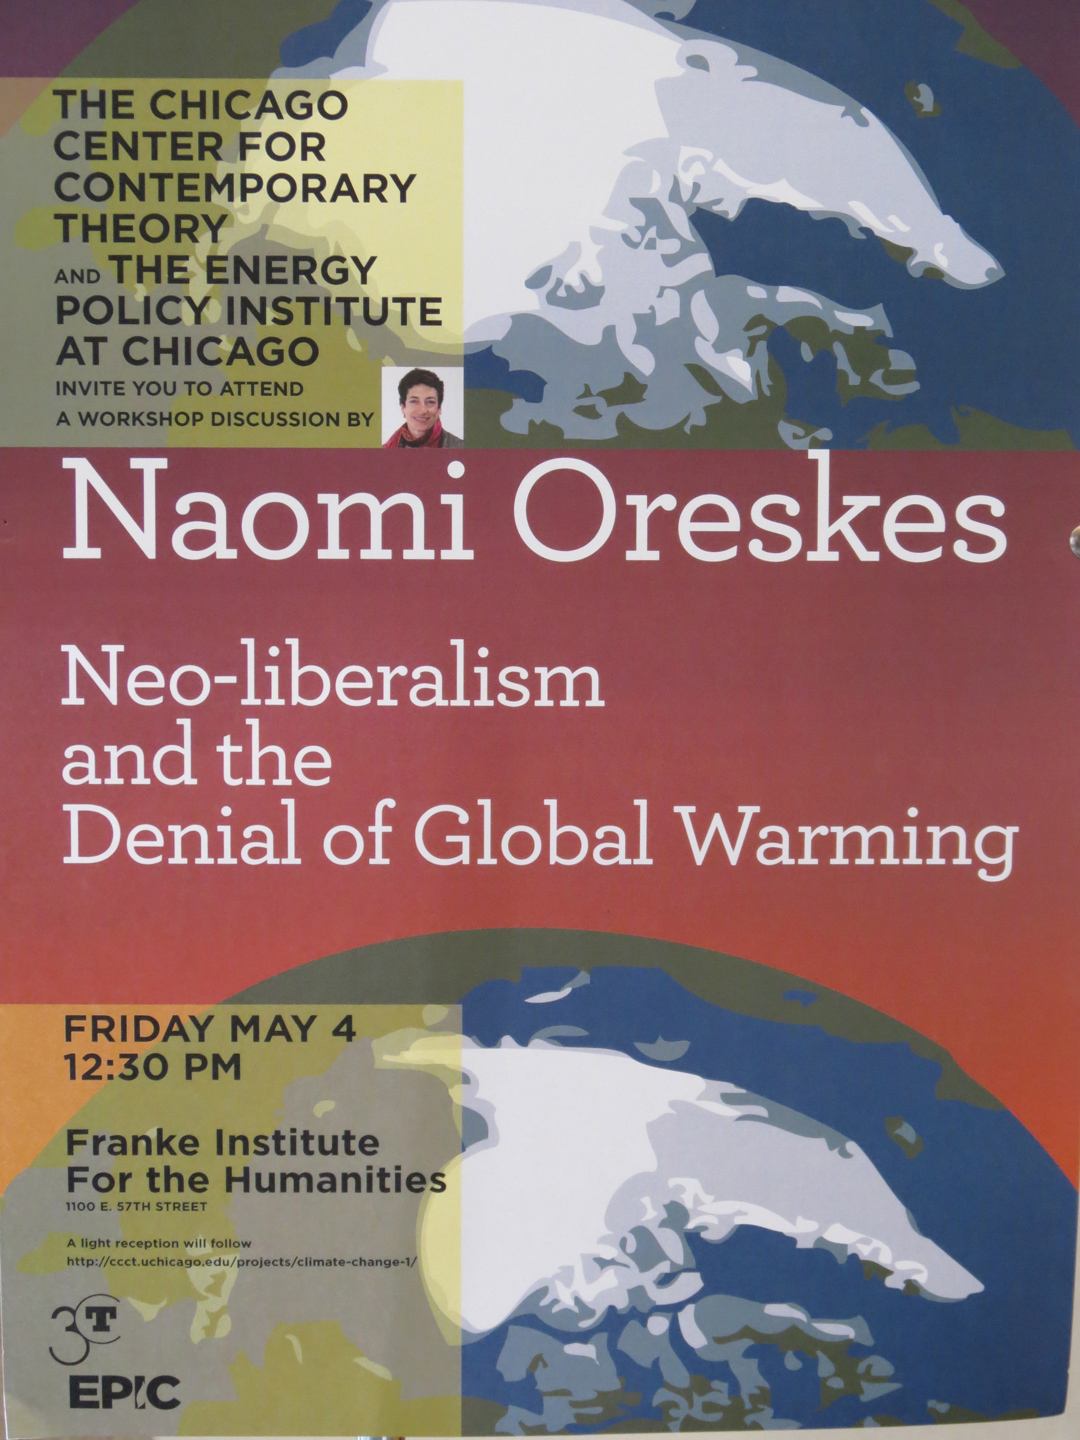 poster for the 2012 Naomi Oreskes event on Climate Change and Neo-Liberalism